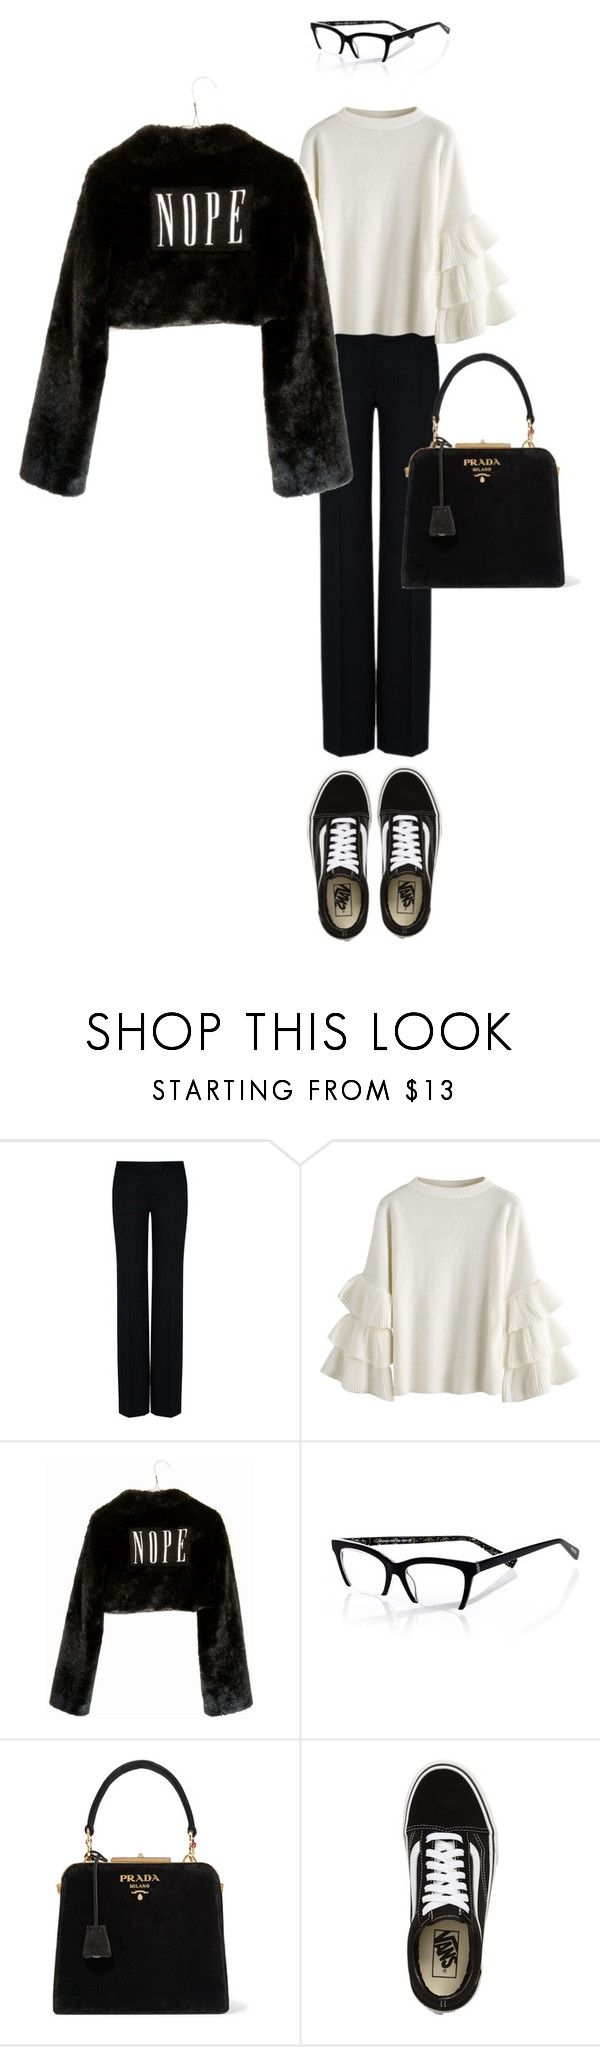 """it made me feel so good"" by leilaprins ❤ liked on Polyvore featuring STELLA McCARTNEY, Wet Seal, eyebobs, Prada and Vans"